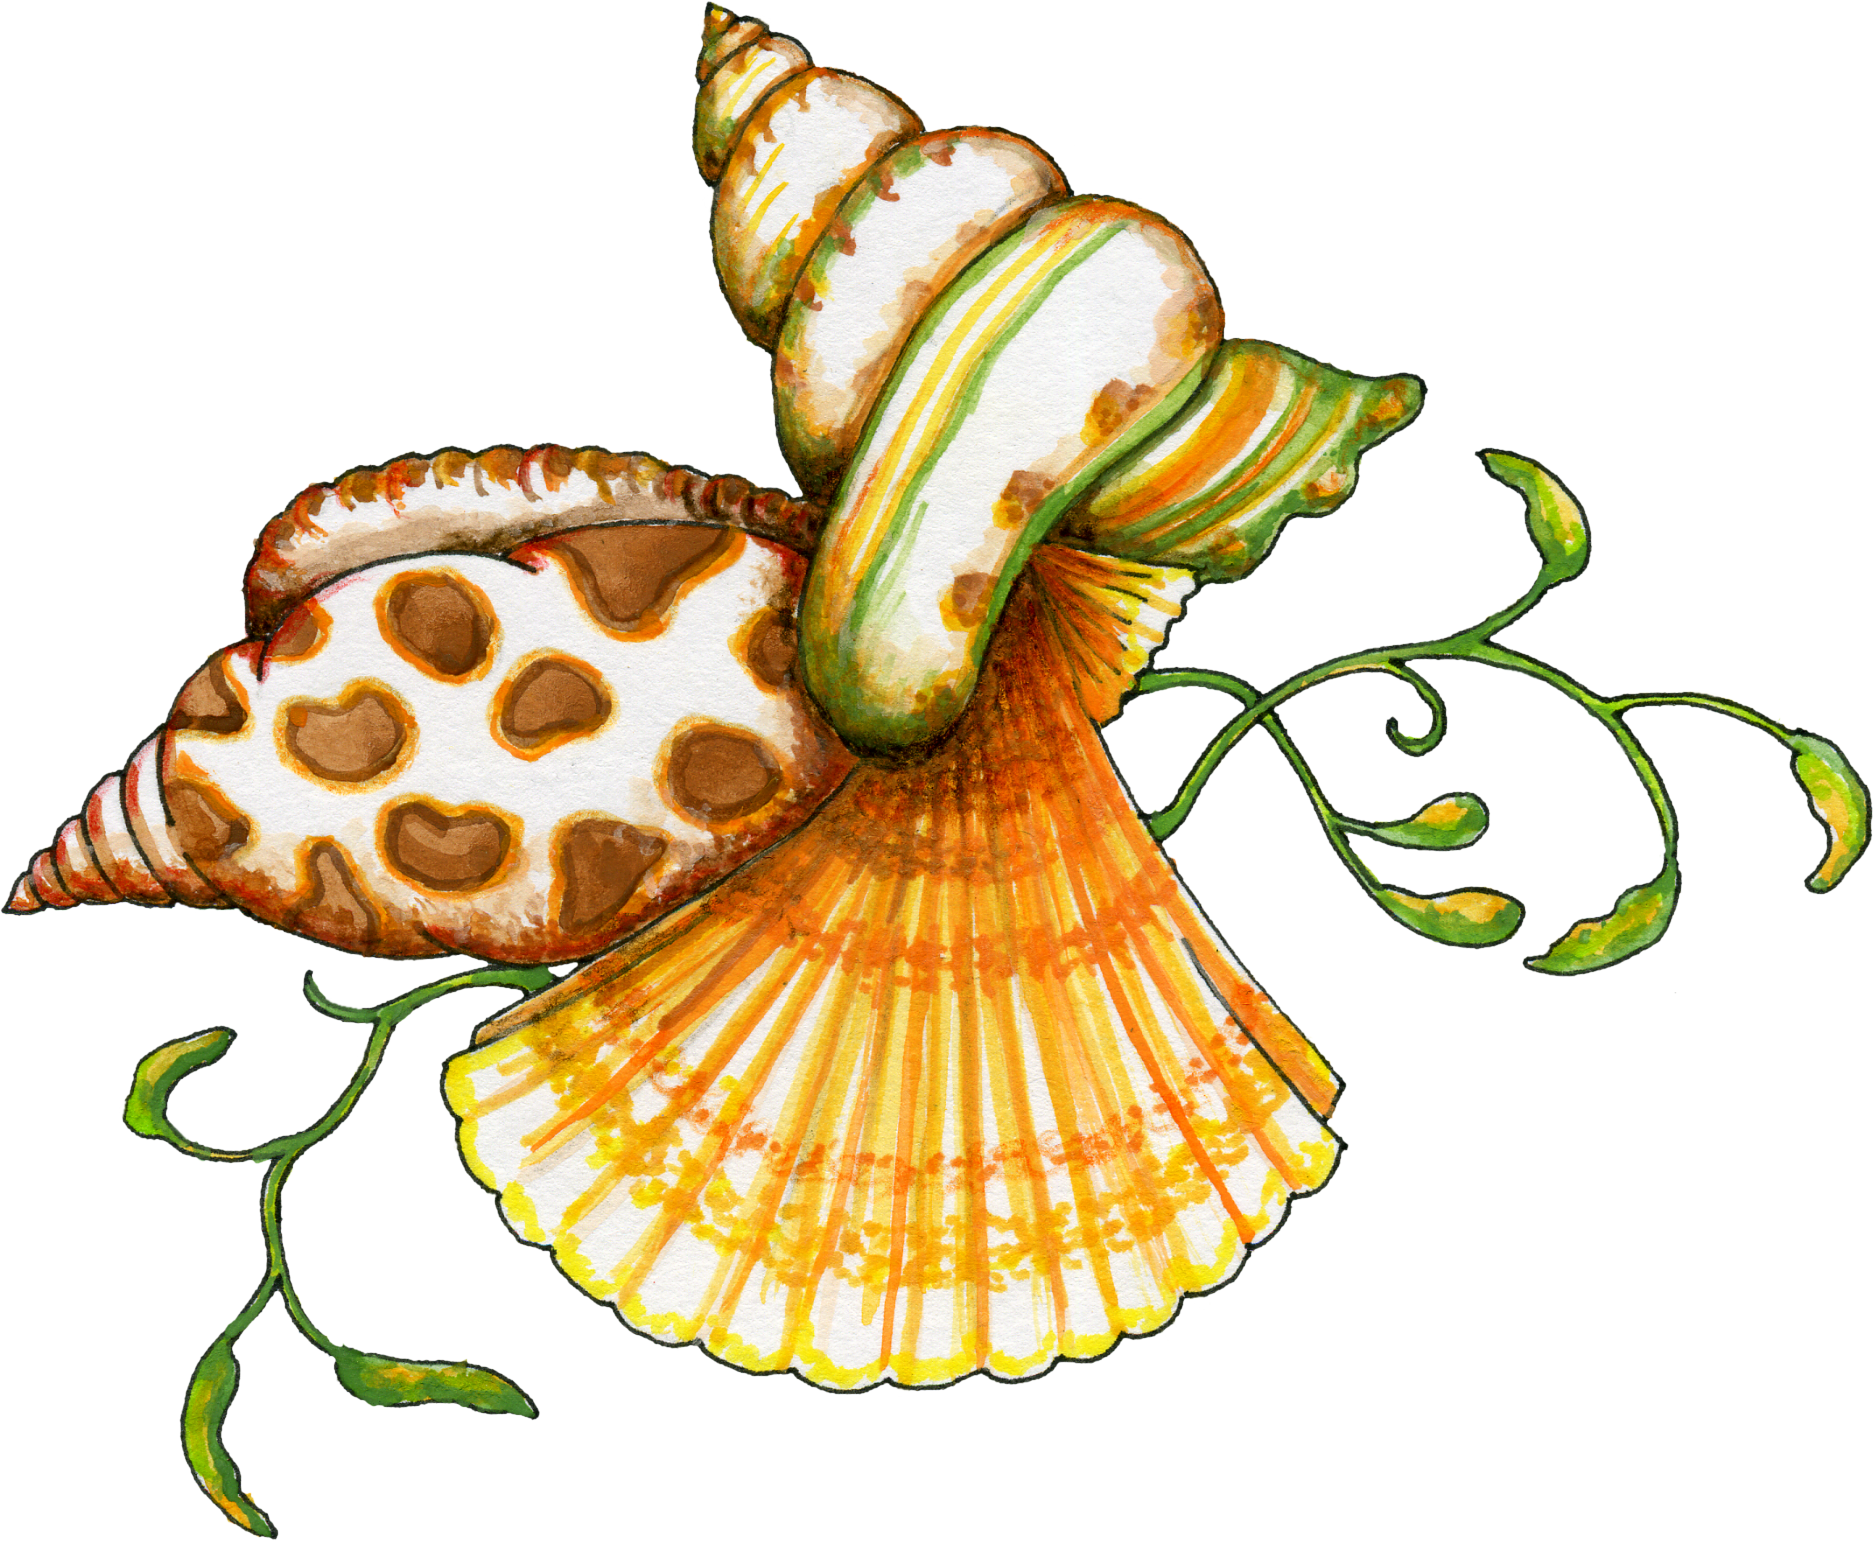 Png graphics free download. Seashell images icons and